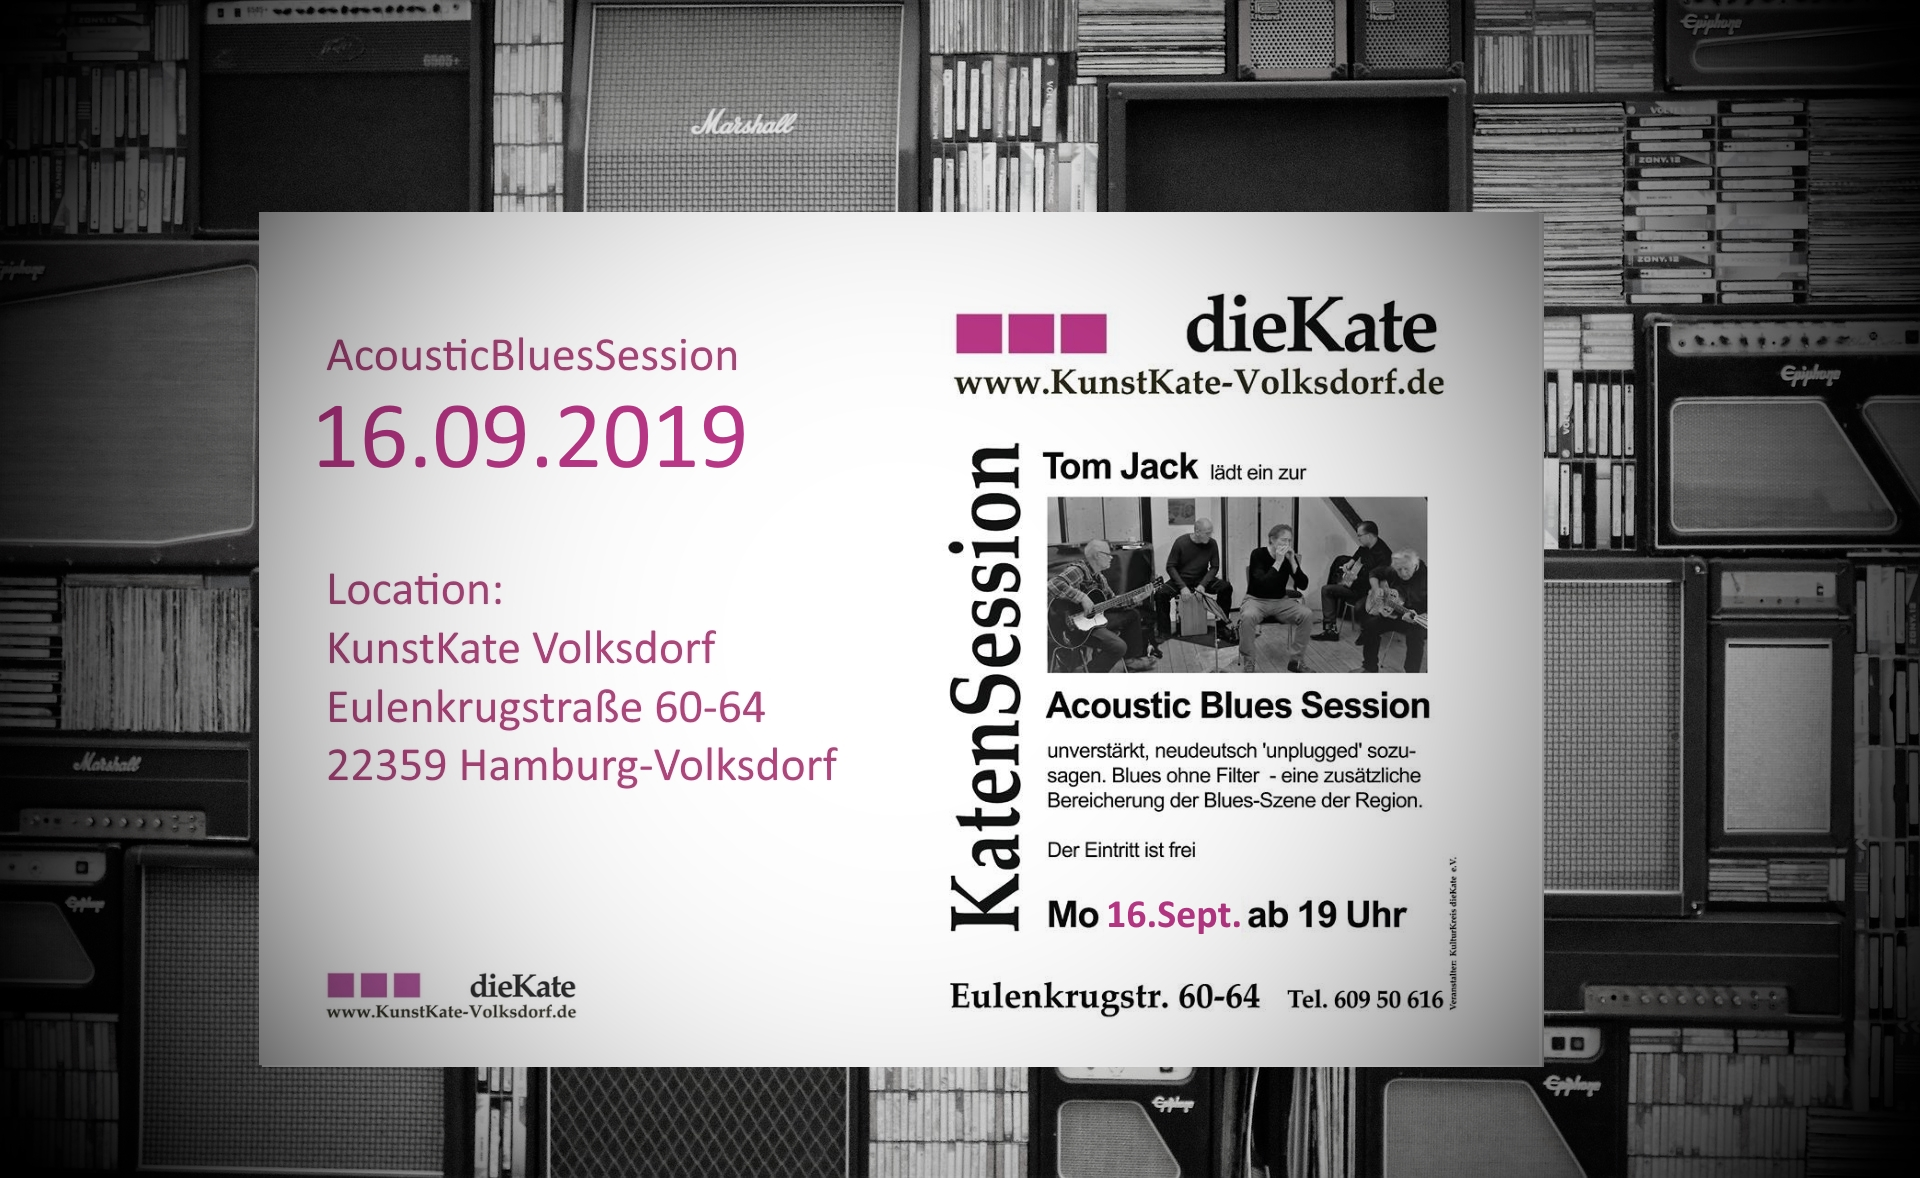 Acoustic Blues Session (ABS) – KunstKate Volksdorf